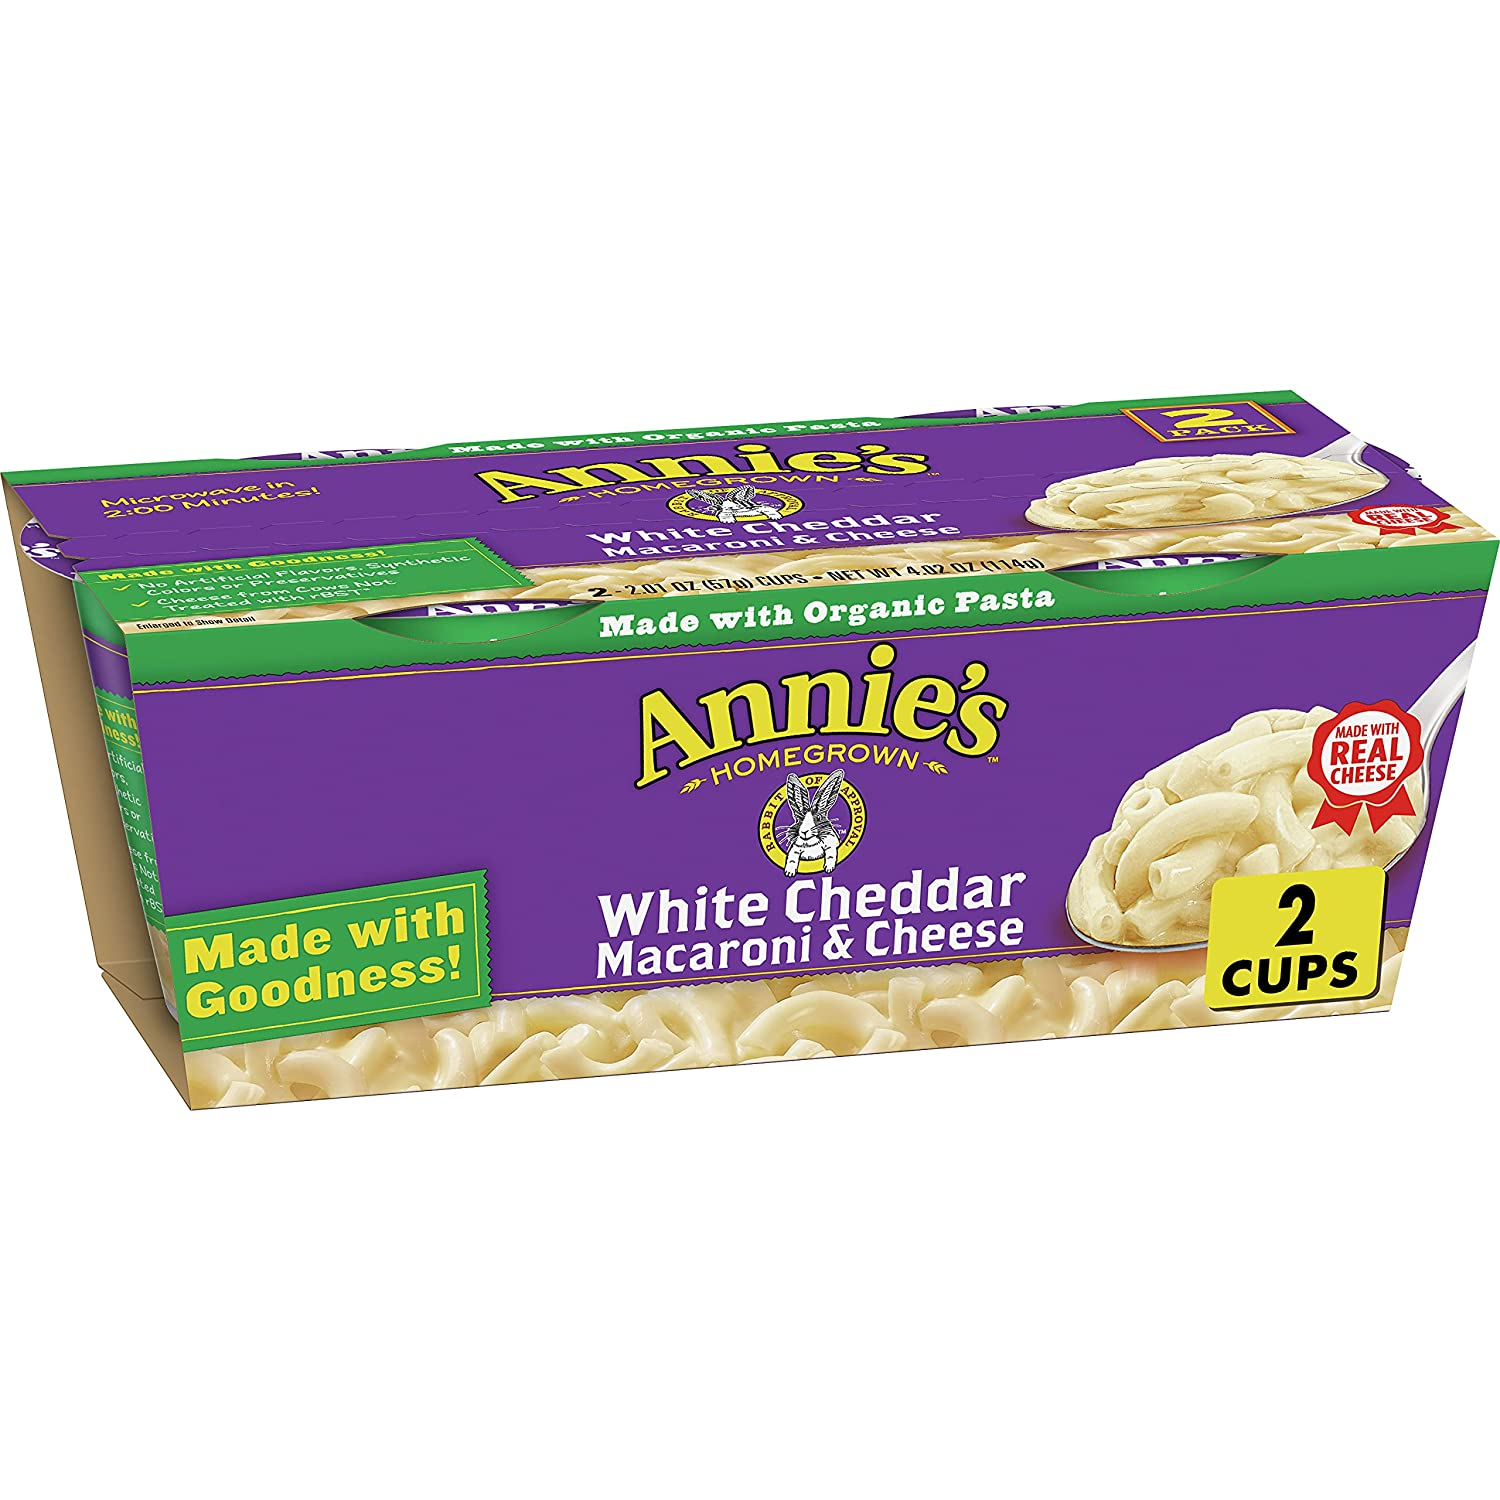 Annie's White Cheddar Macaroni & Cheese, Microwavable Mac & Cheese, 4.02 oz, 2 ct (Pack of 6)